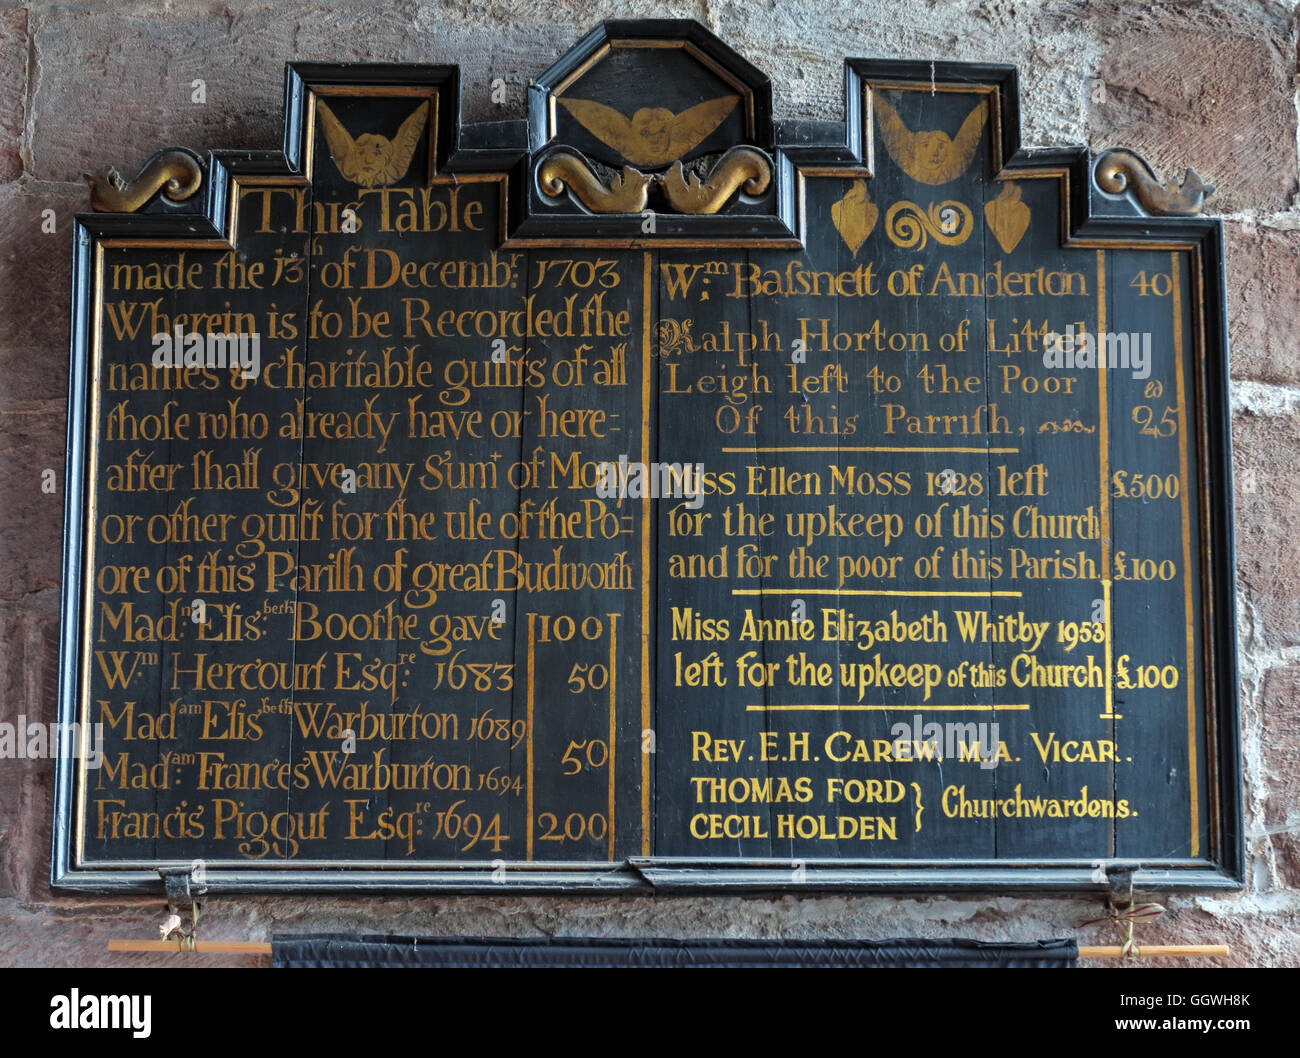 St Marys & All Saints Church Gt Budworth Interior, Cheshire, England,UK- Charitable gifts board - Stock Image